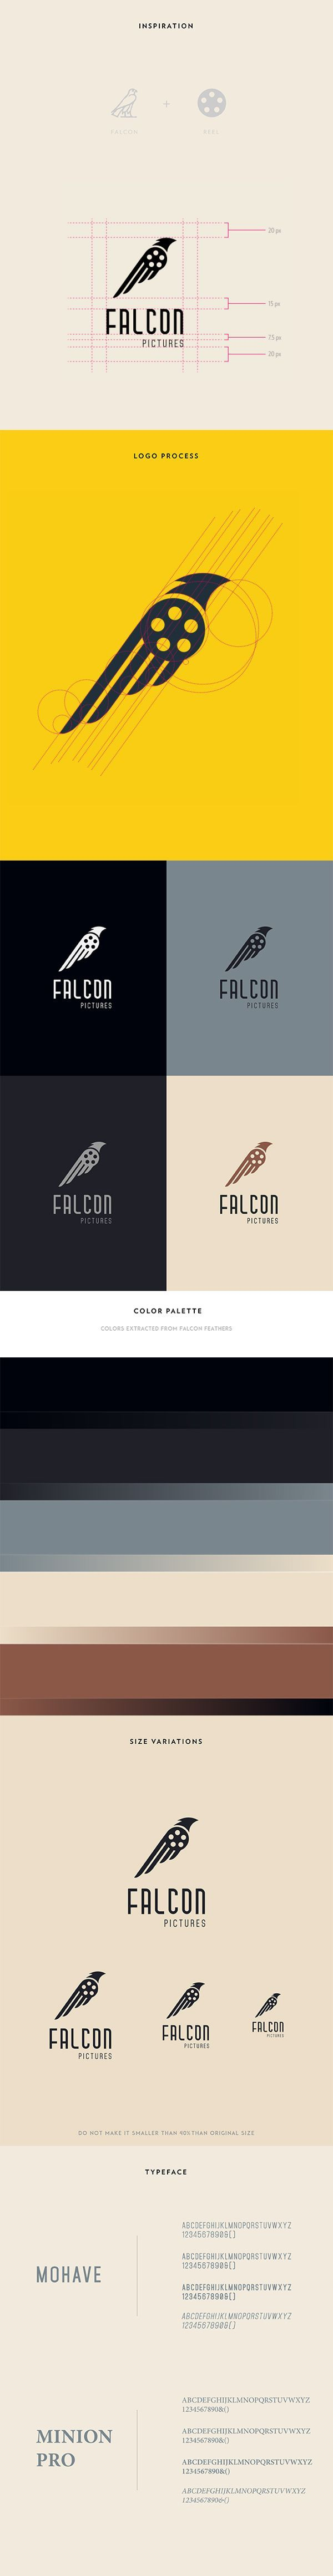 Falcon Pictures Logo Design by Grunz Saint / animal